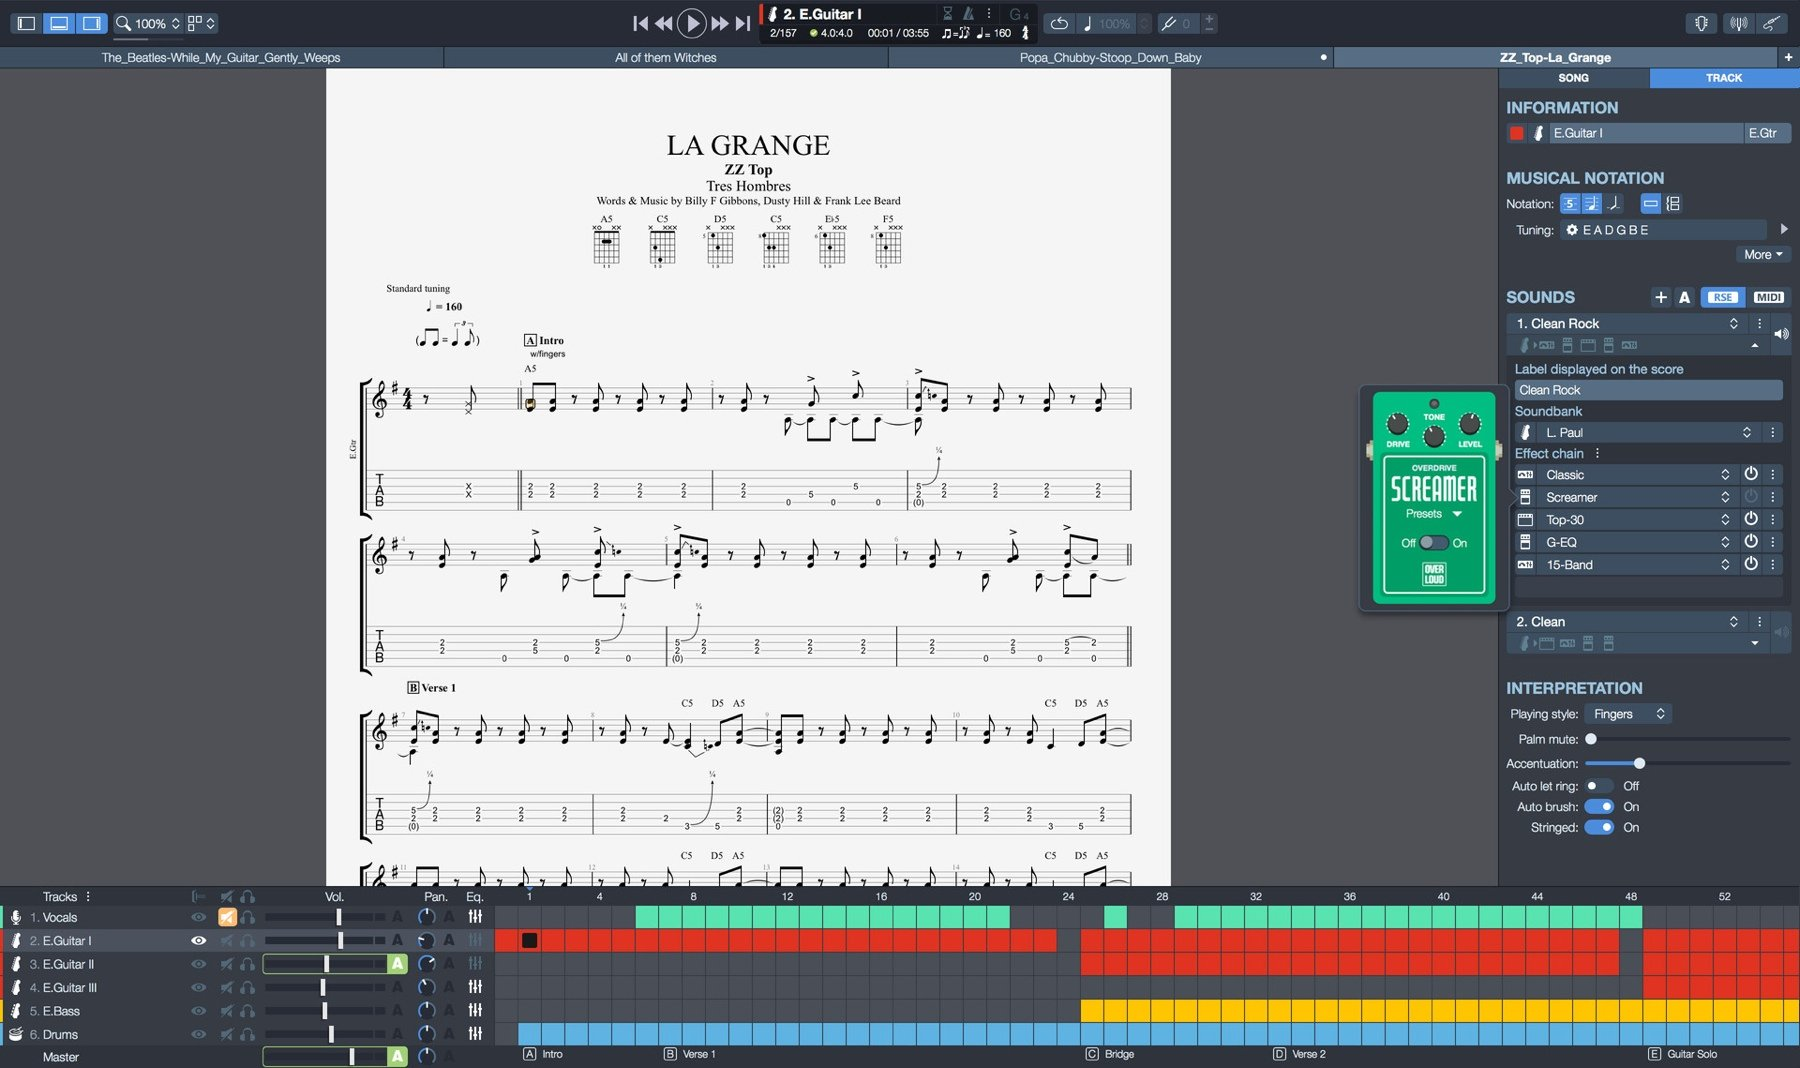 Arobas Music Guitar Pro 75 Download Sweetwater